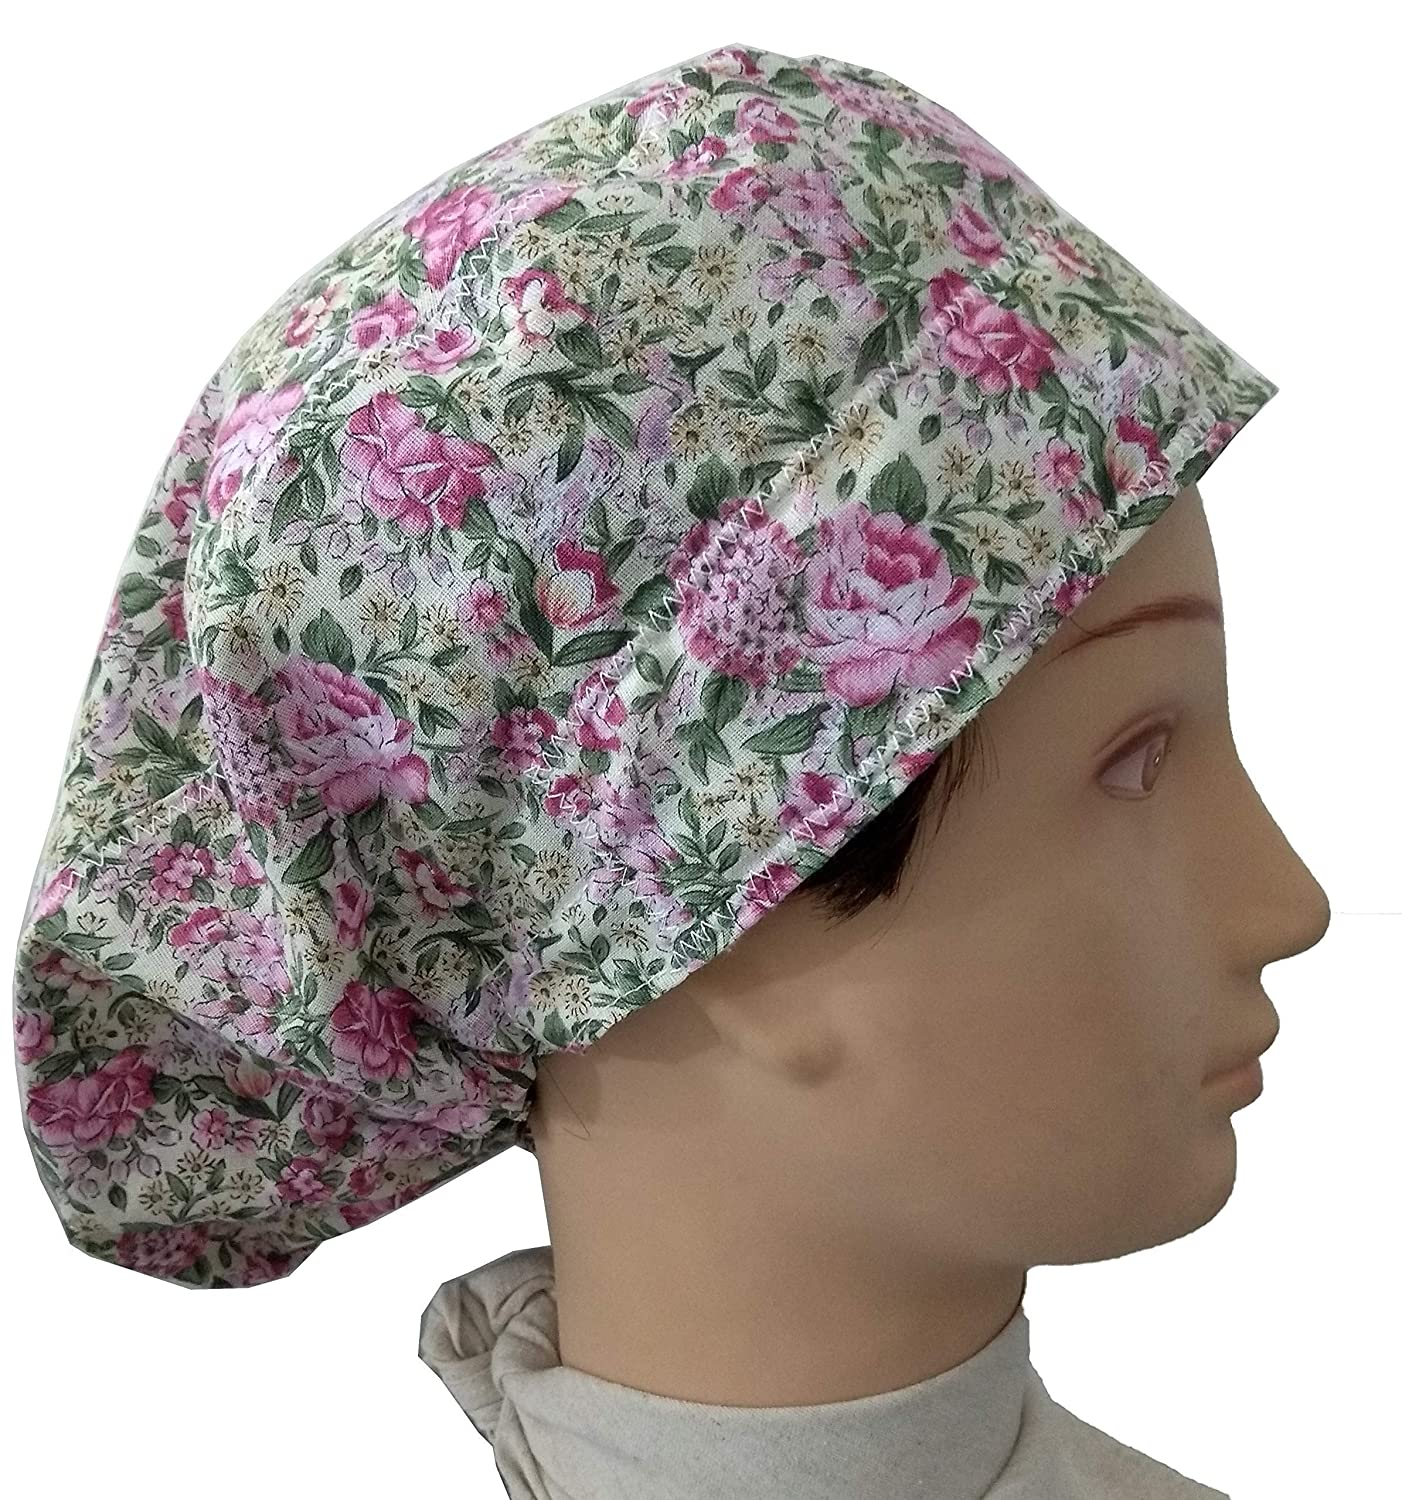 Surgery Spring flowers for long hair with sweatband y ajutable to your liking dentist Kitchen Scrub hat theatre cap Veterinary Nurse